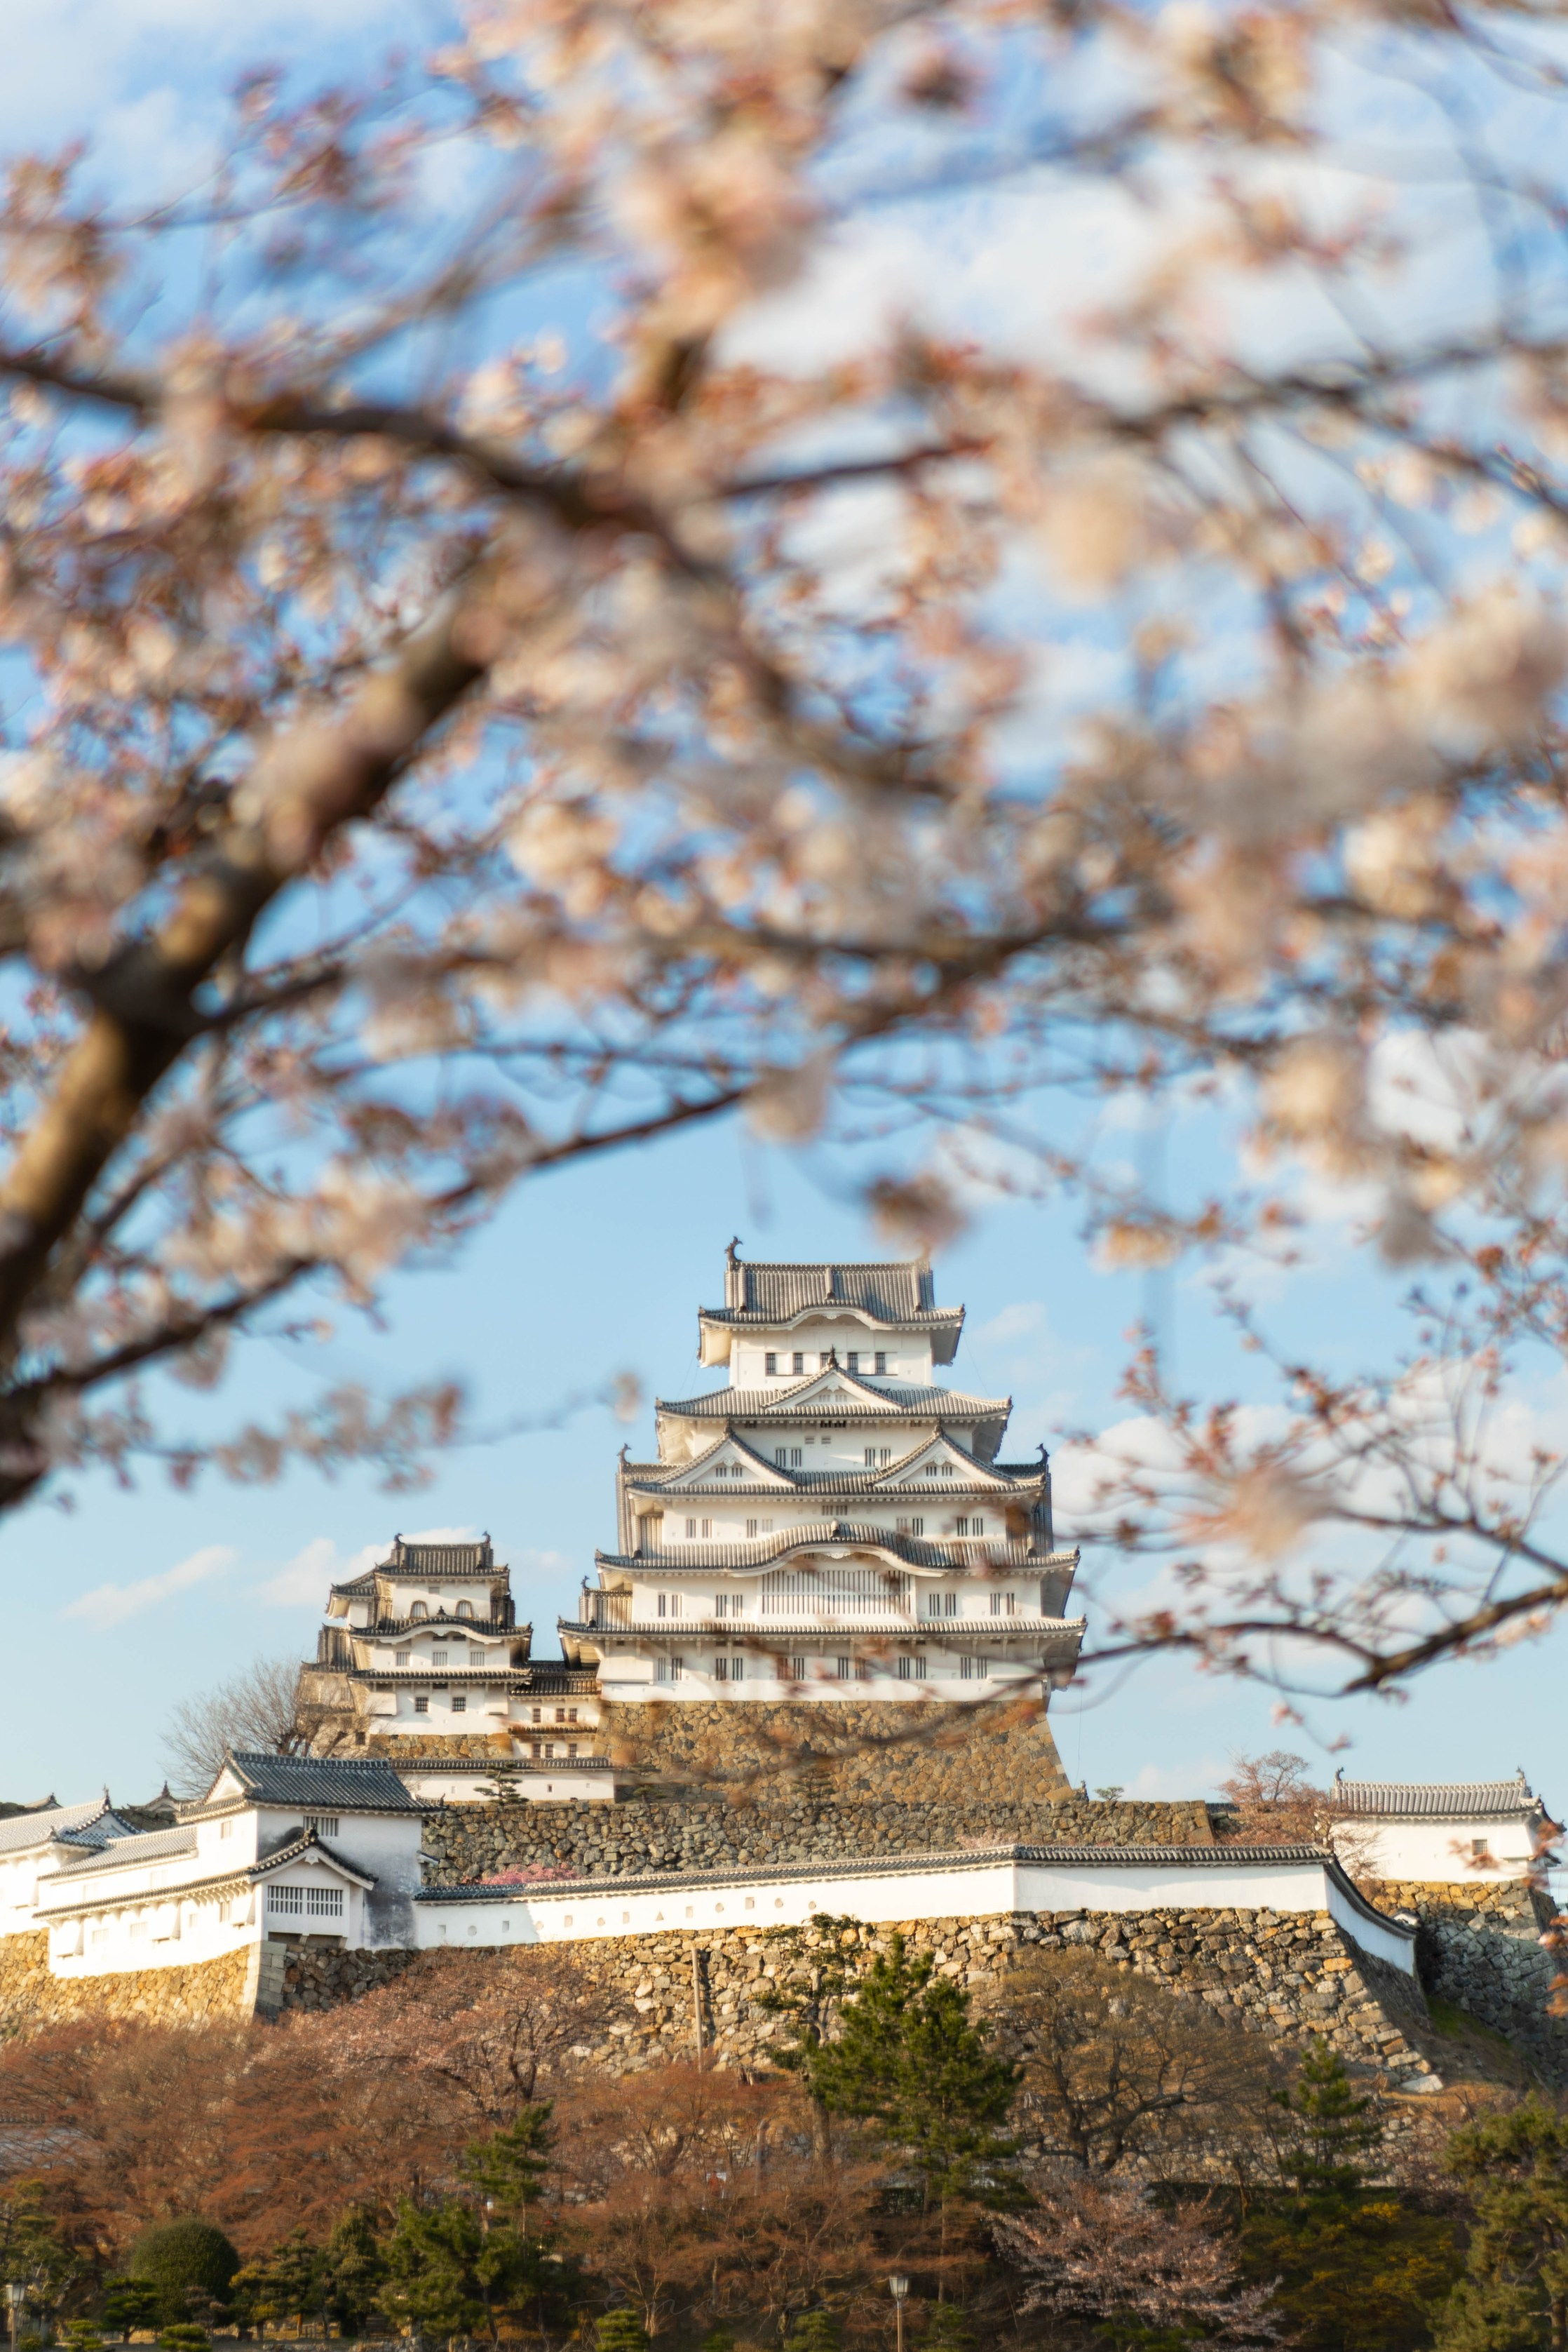 Cherry Blossoms Over Himeji Castle in Himeji, Japan by Annie Fairfax